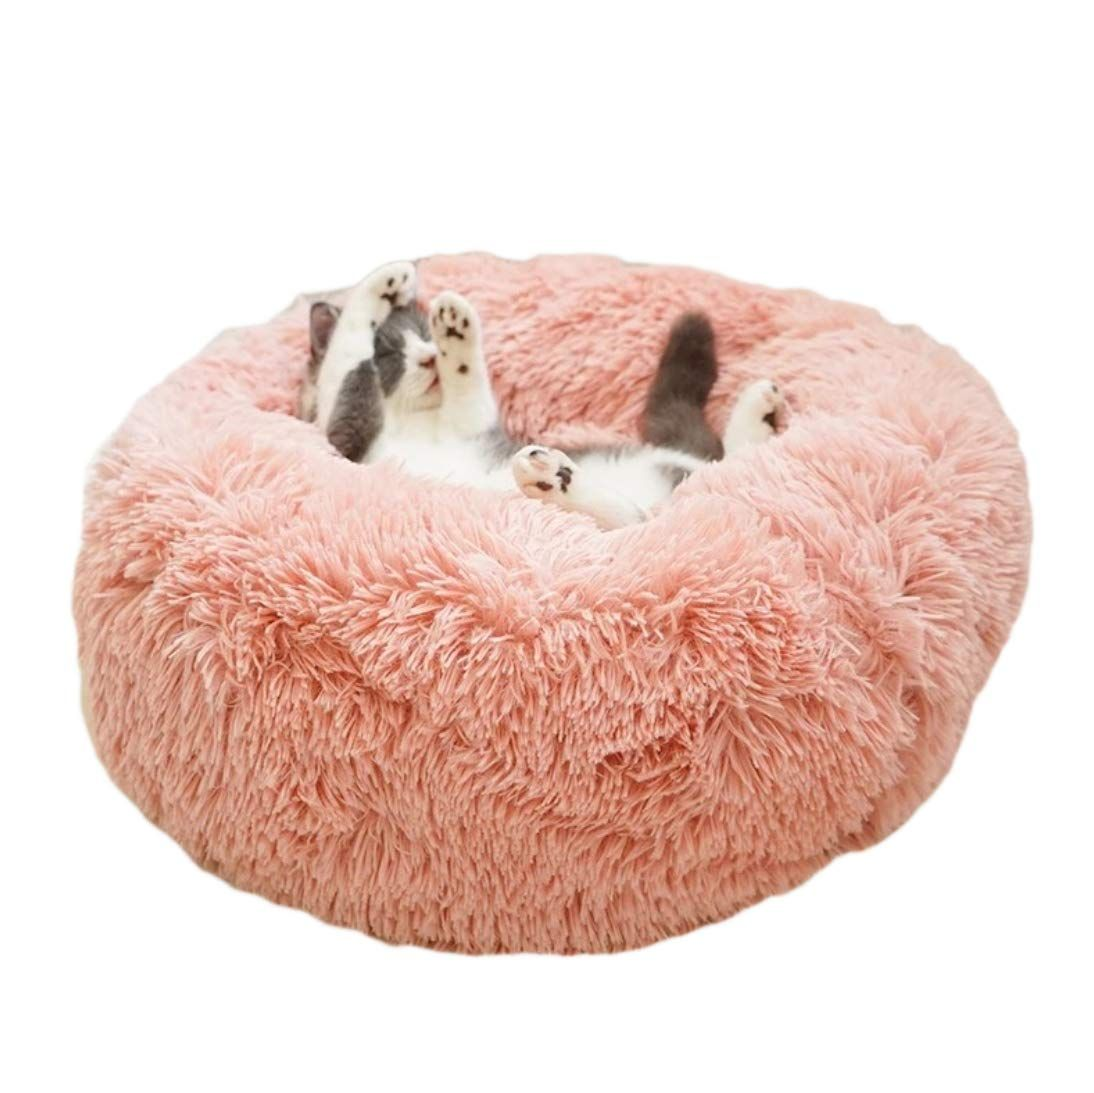 Fymall Luxury Faux Fur Pet Bed For Cats Small Dogs Cuddler Oval Plush Bed Walmart Com In 2021 Faux Fur Pet Bed Faux Fur Dog Beds Dog Bed Luxury